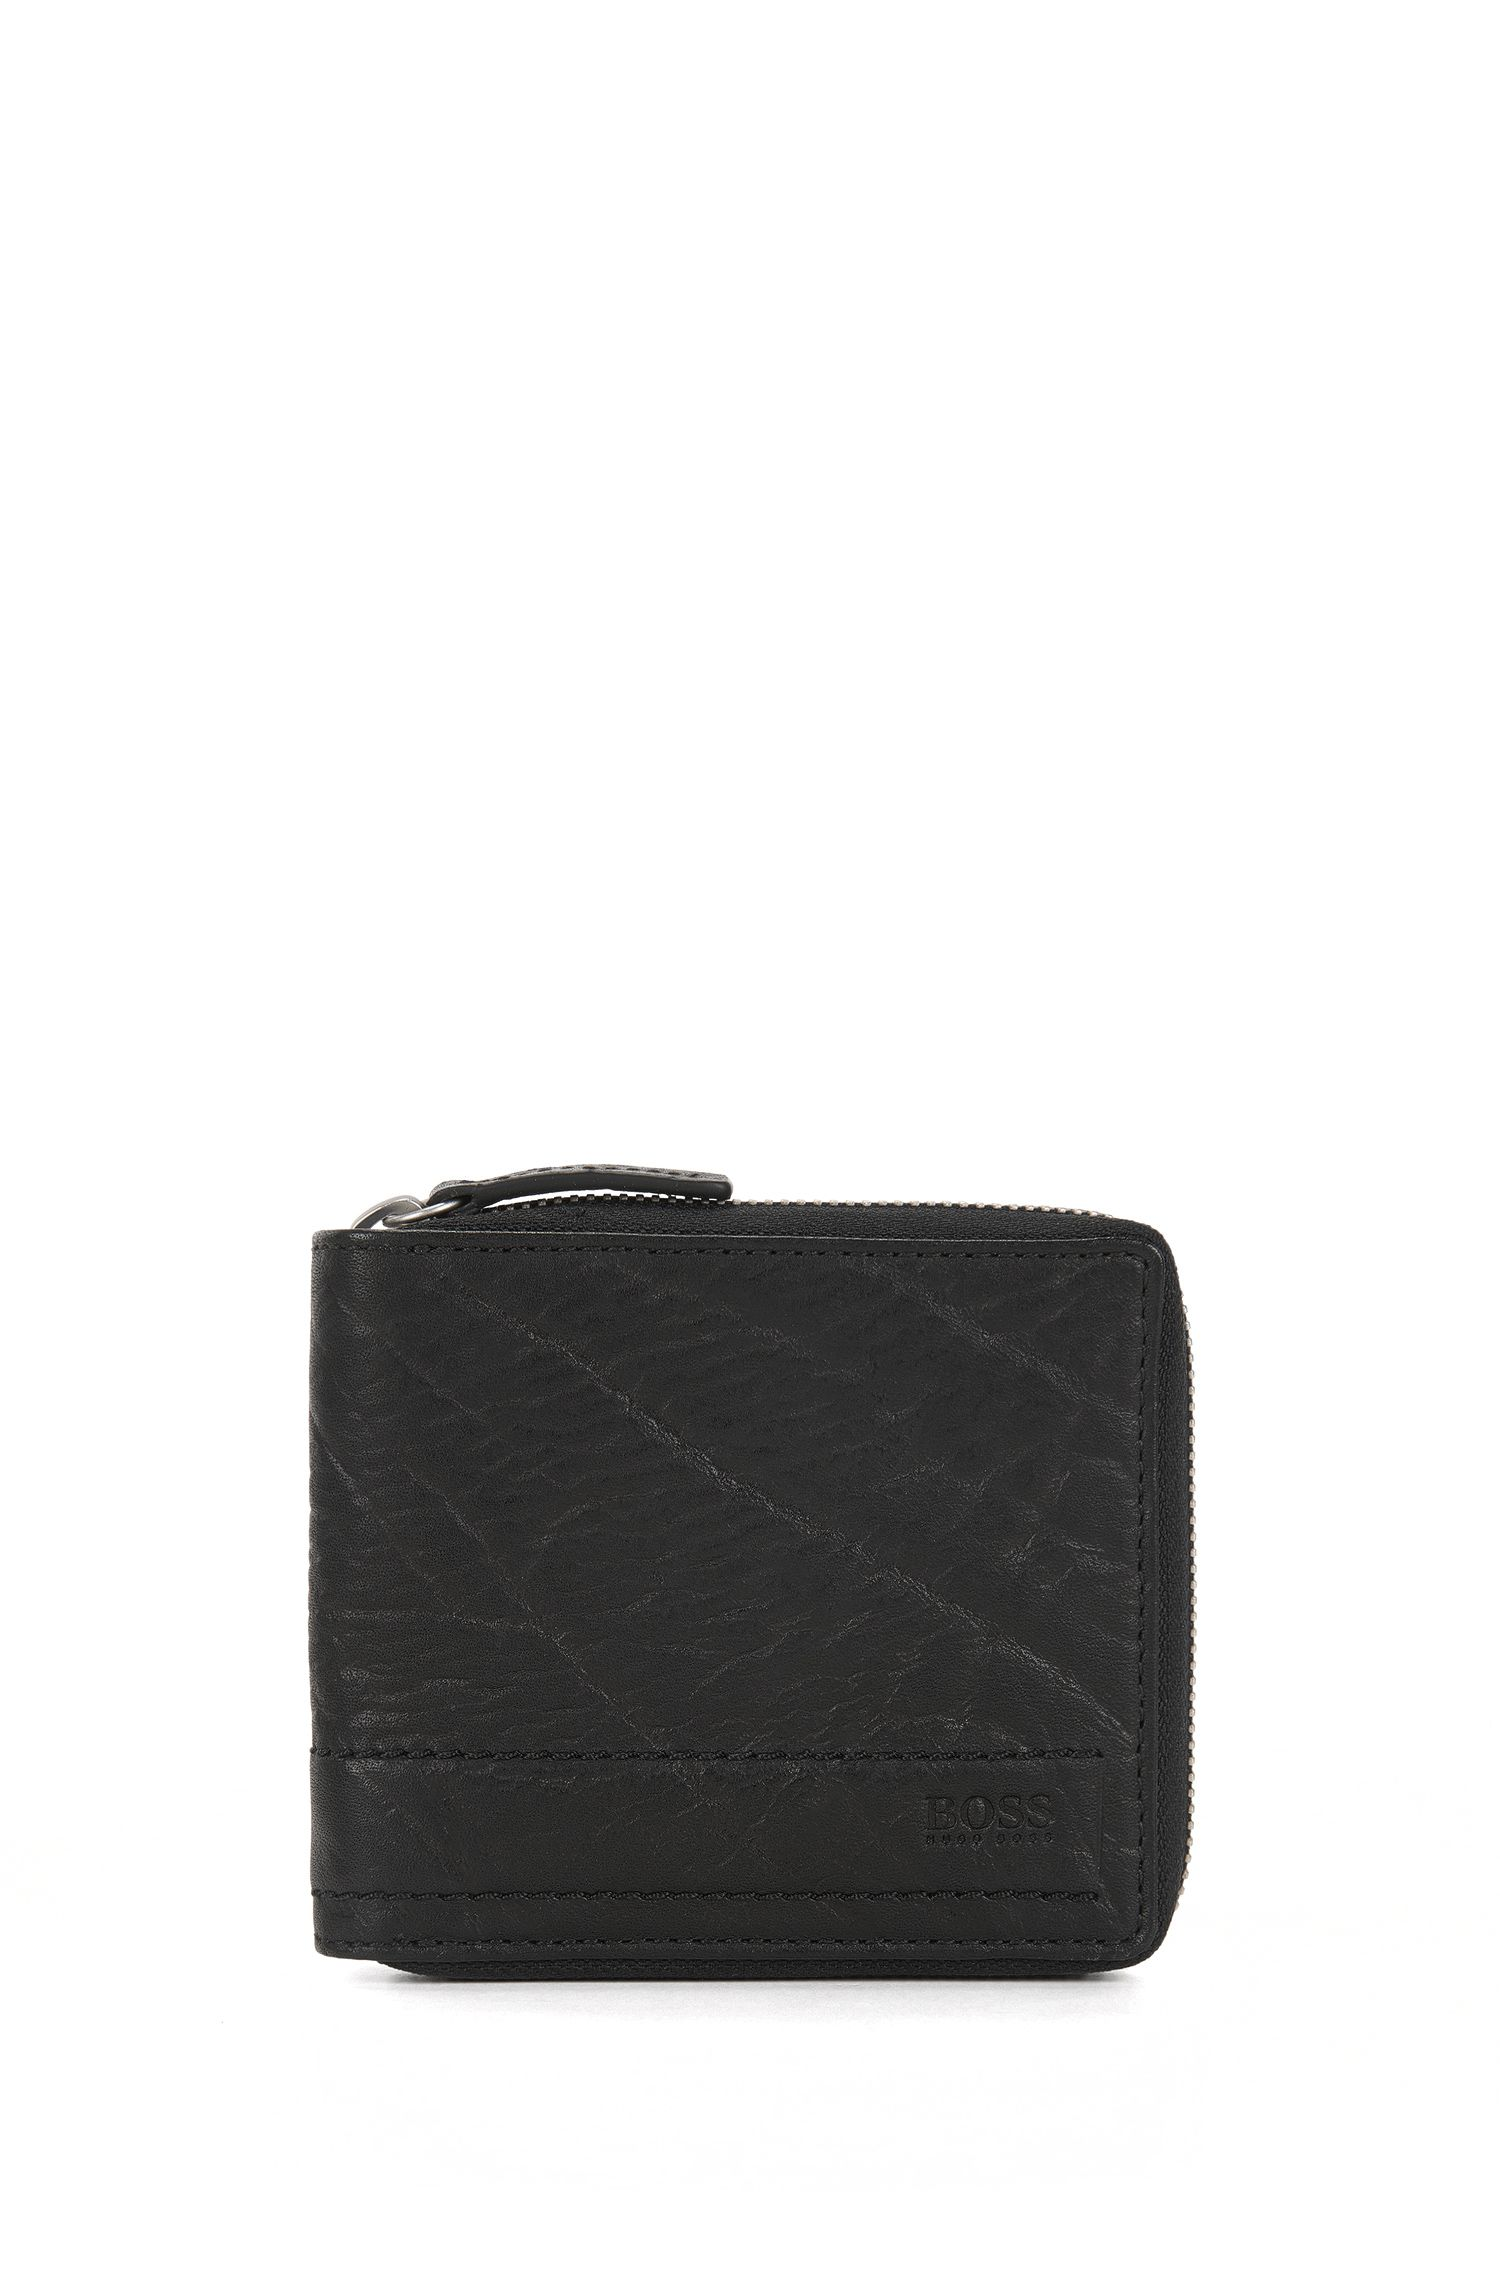 Zip-around wallet in grained leather